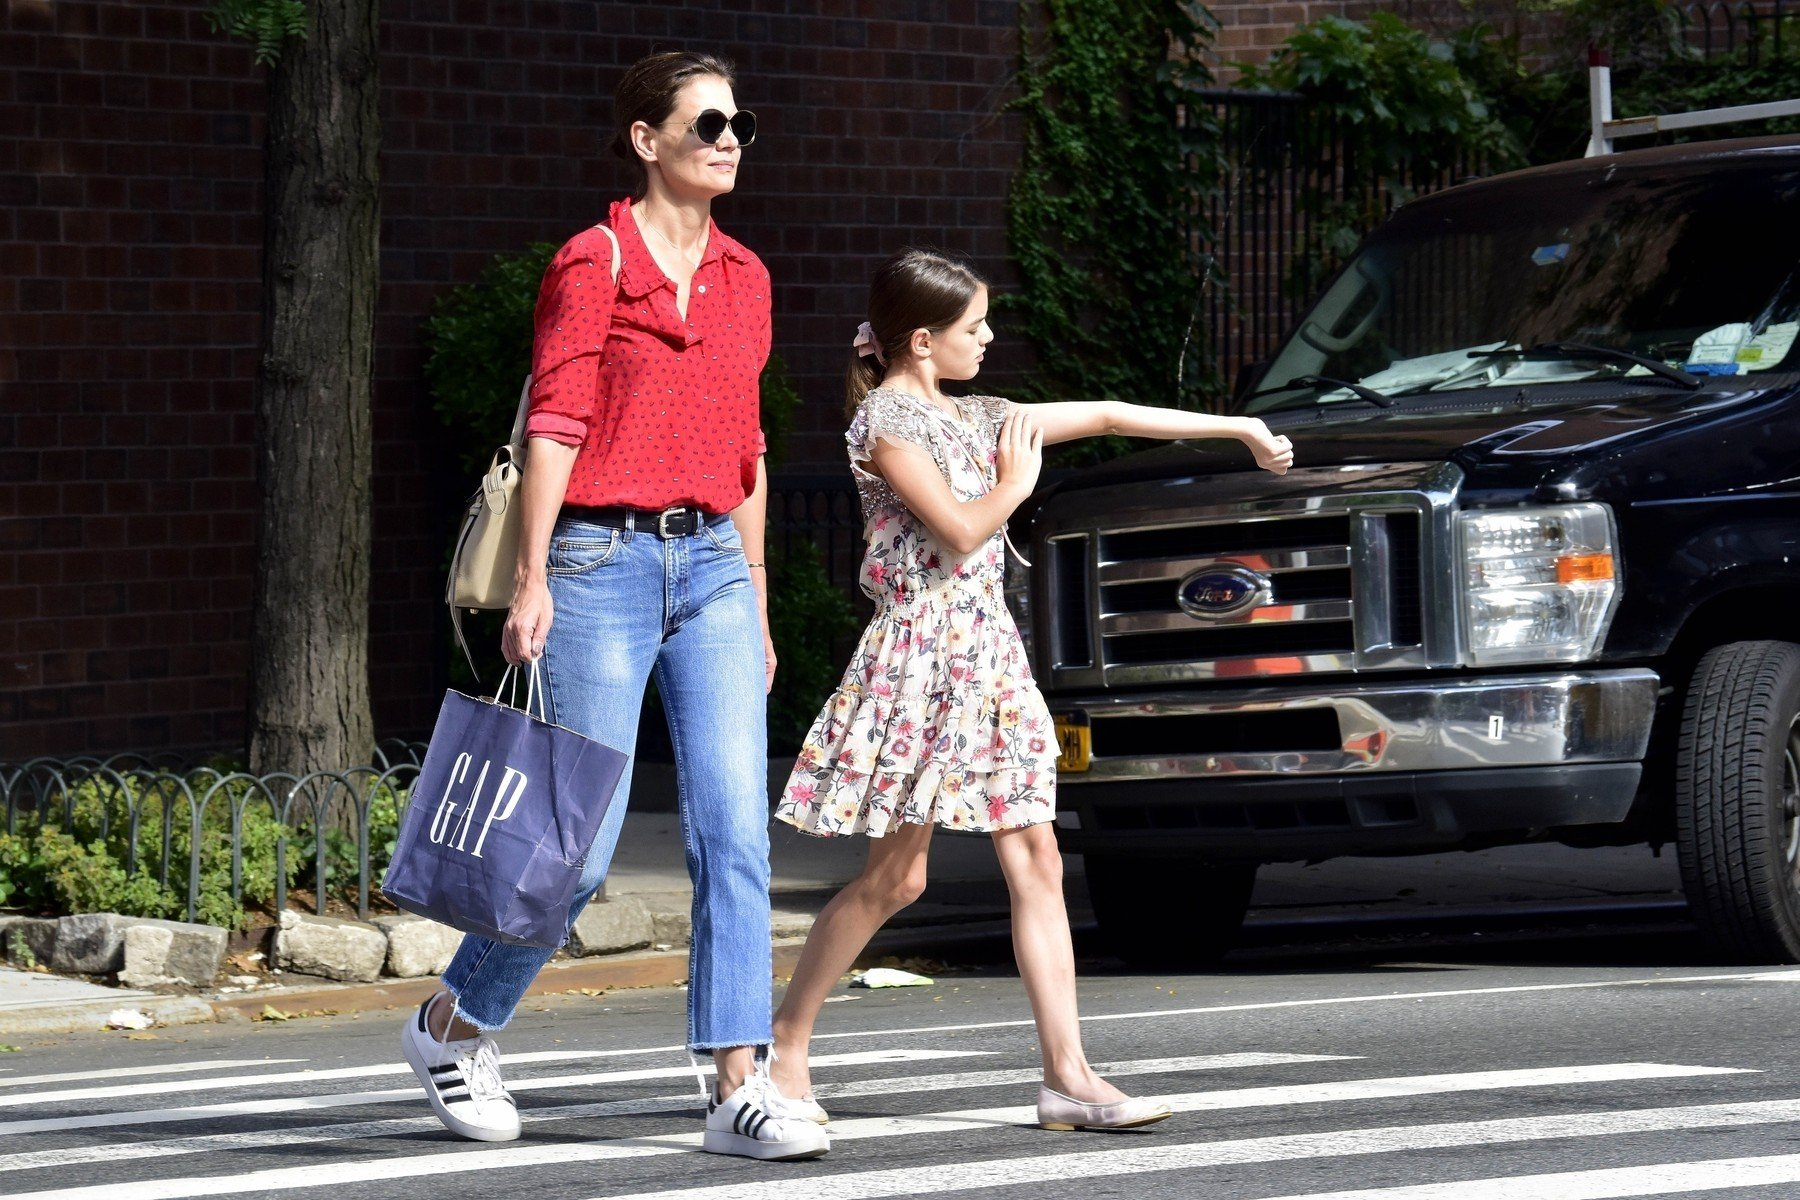 ** RIGHTS: WORLDWIDE EXCEPT IN BELGIUM, FRANCE, GERMANY, NETHERLANDS, POLAND, SPAIN ** New York, NY  - *EXCLUSIVE*Katie Holmes shares a hug with her daughter Suri while they spend some quality time walking around the